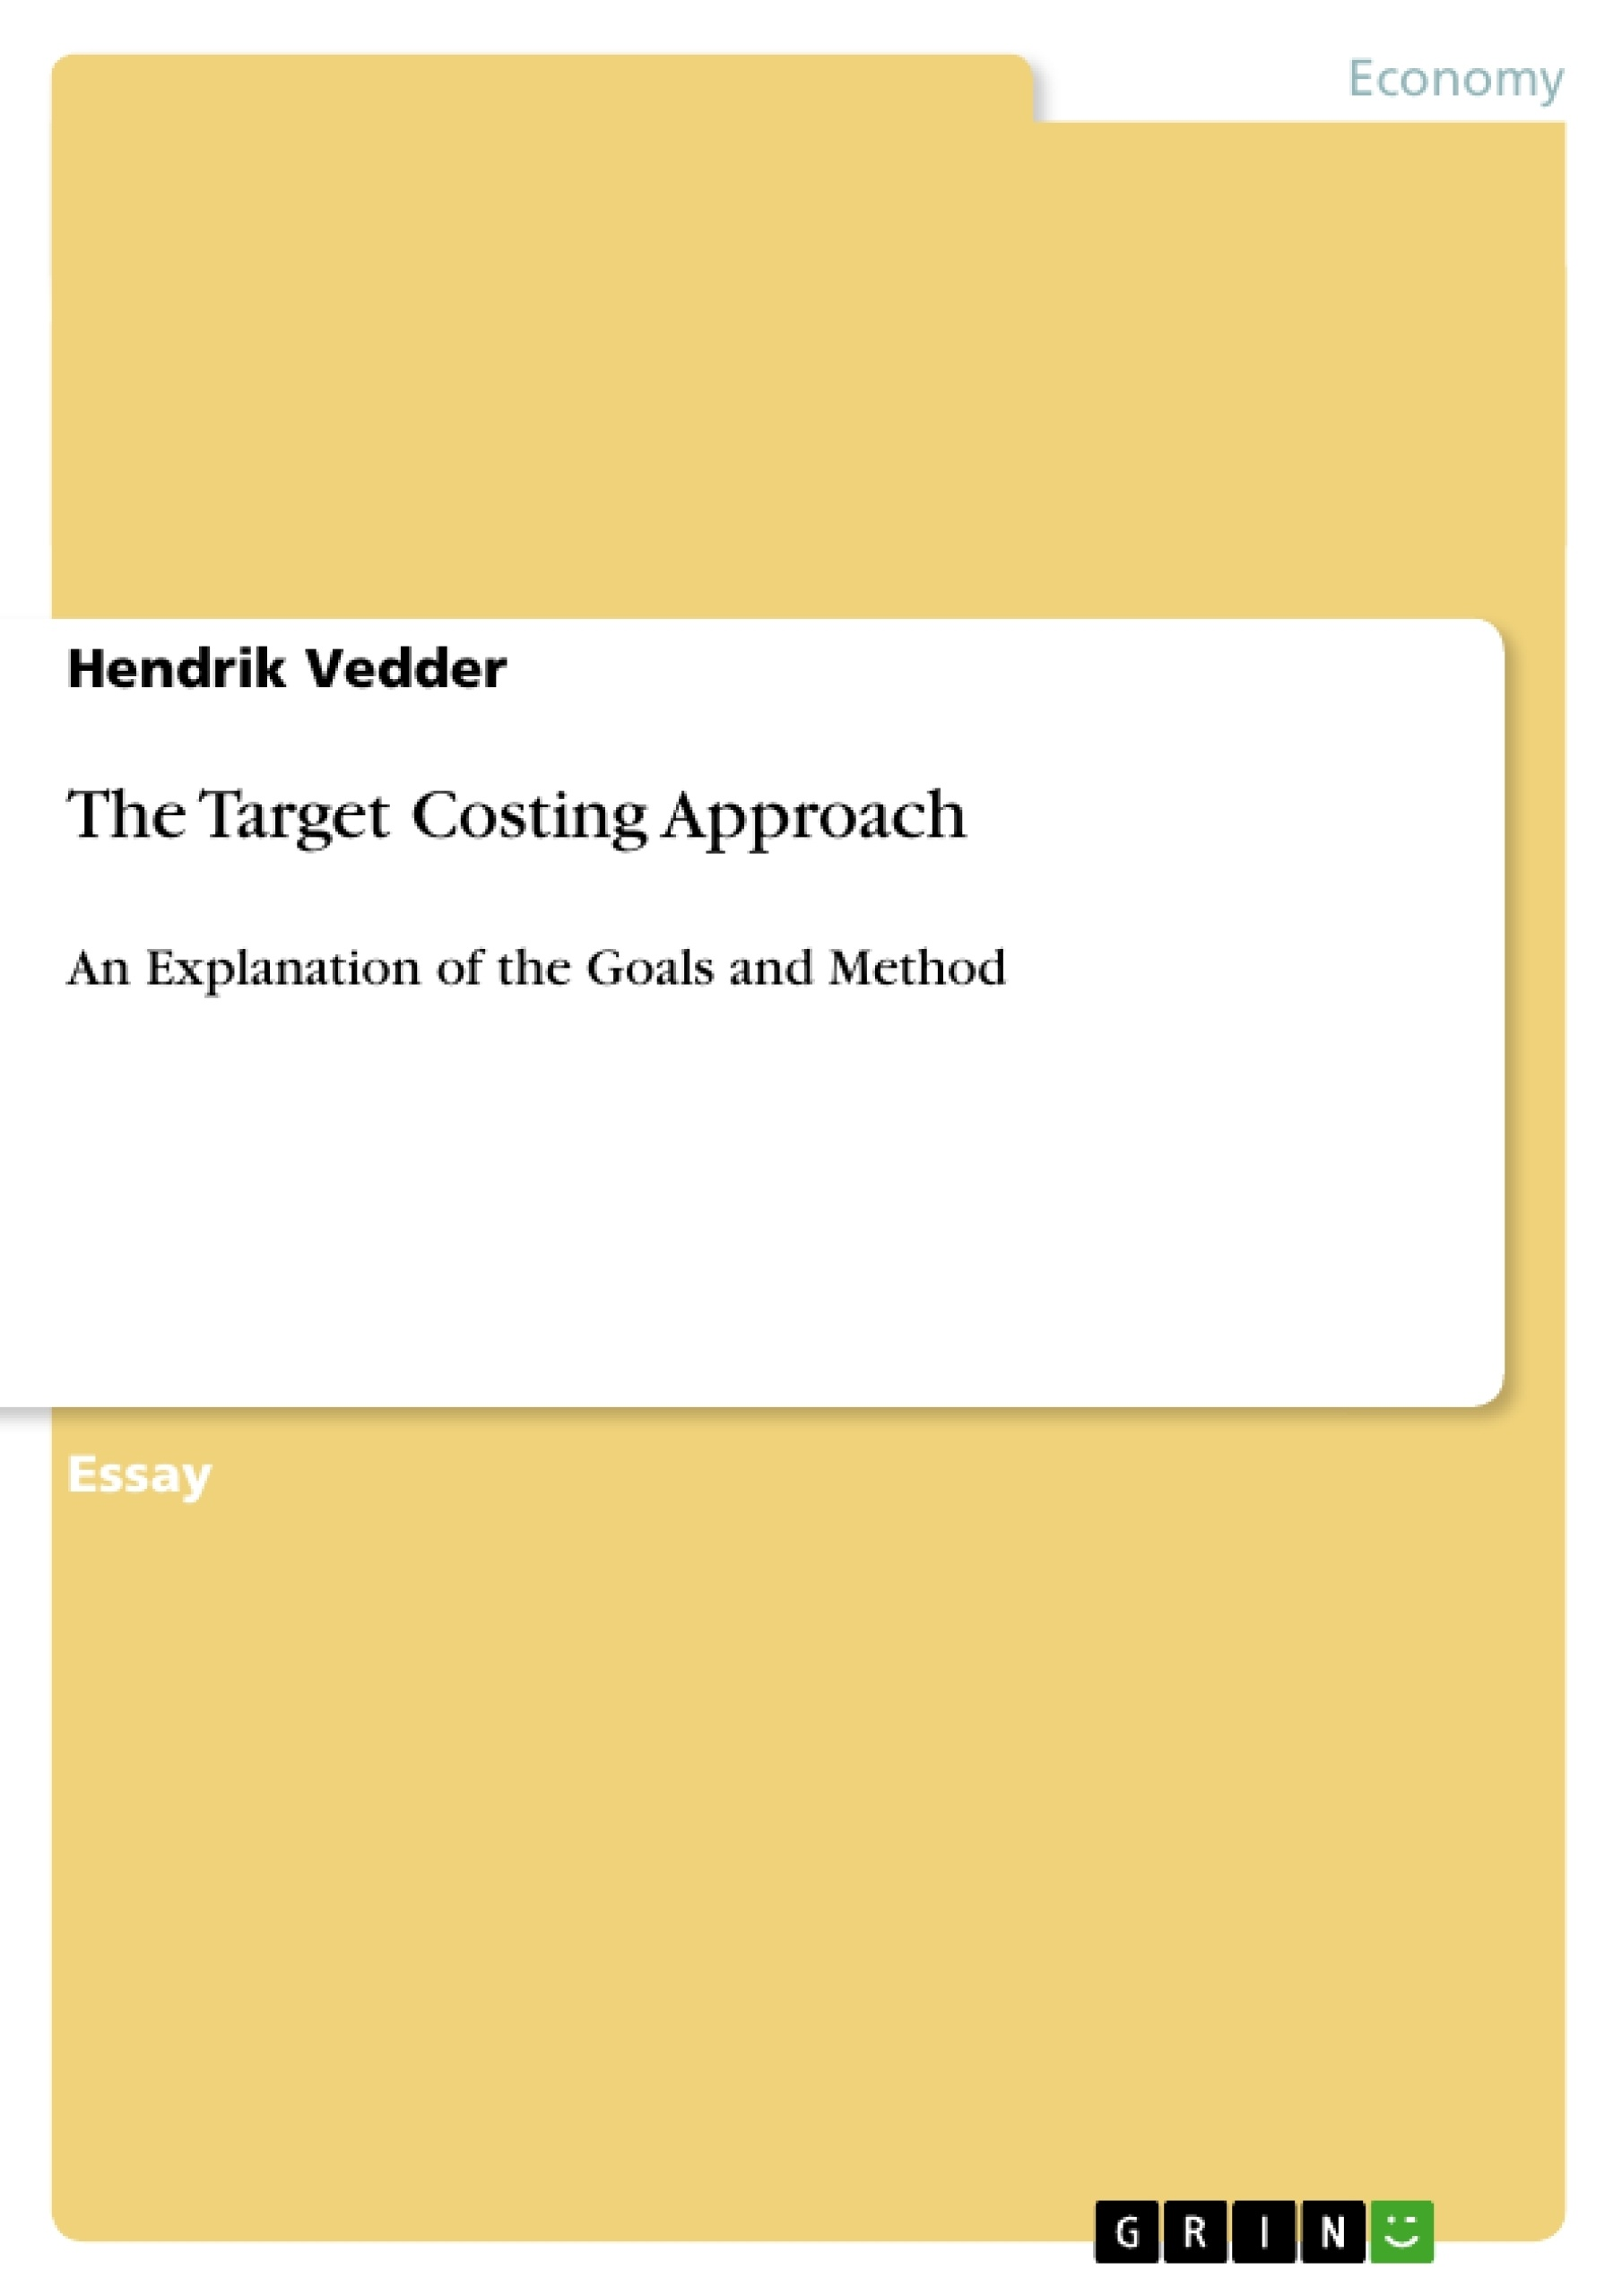 Title: The Target Costing Approach